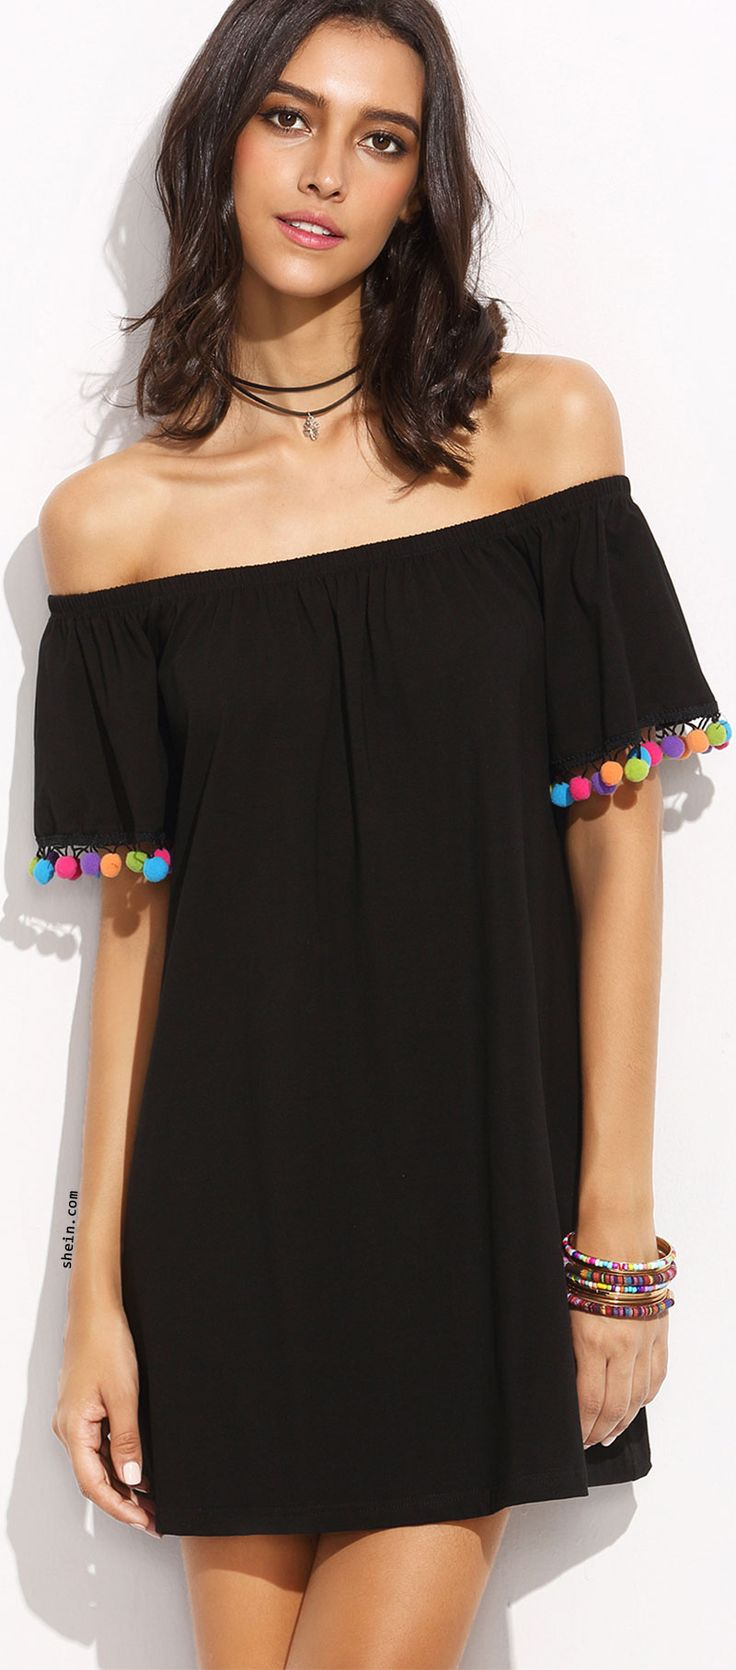 Cute dress for vocation!